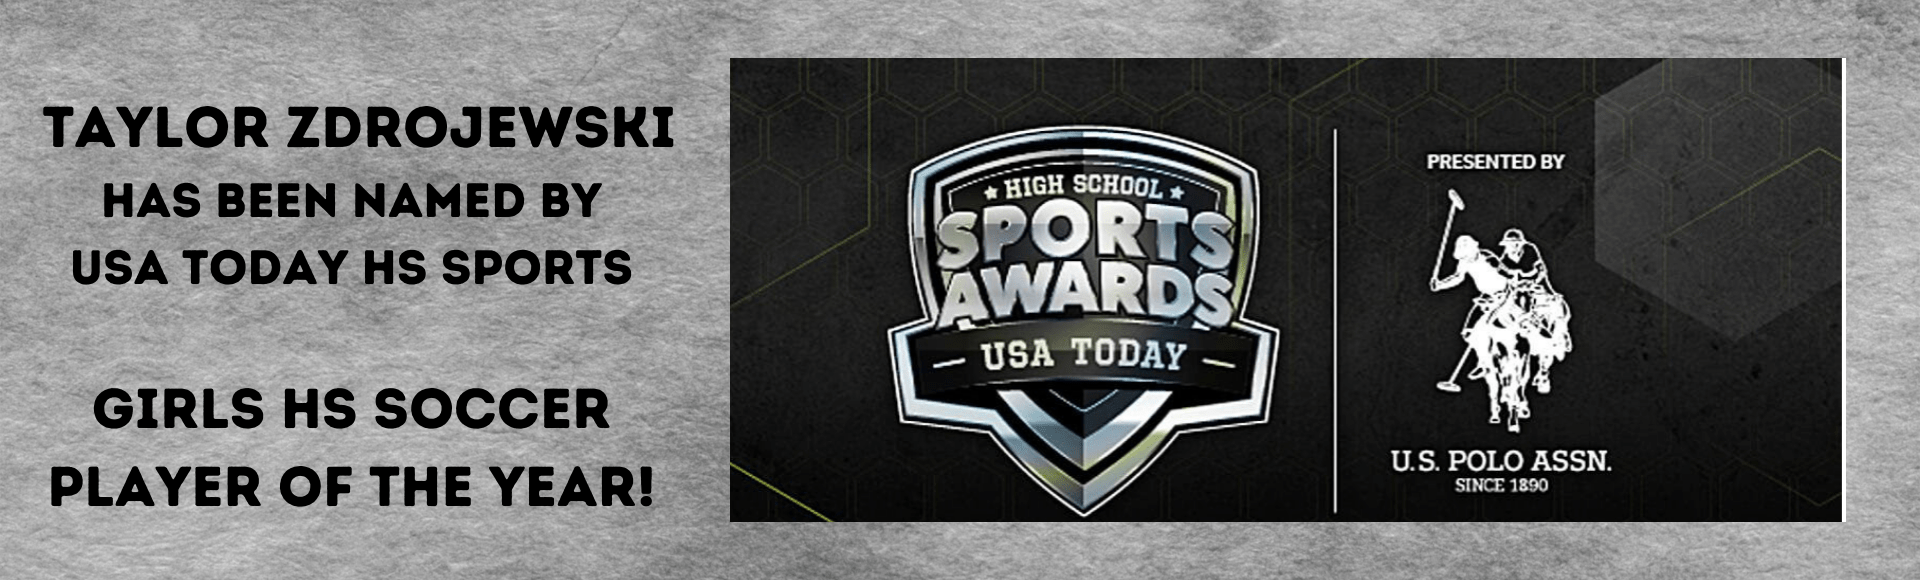 US TODAY SELECTS TAYLOR ZDROJEWSKI ~ GIRLS HIGH SCHOOL SOCCER PLAYER OF THE YEAR!